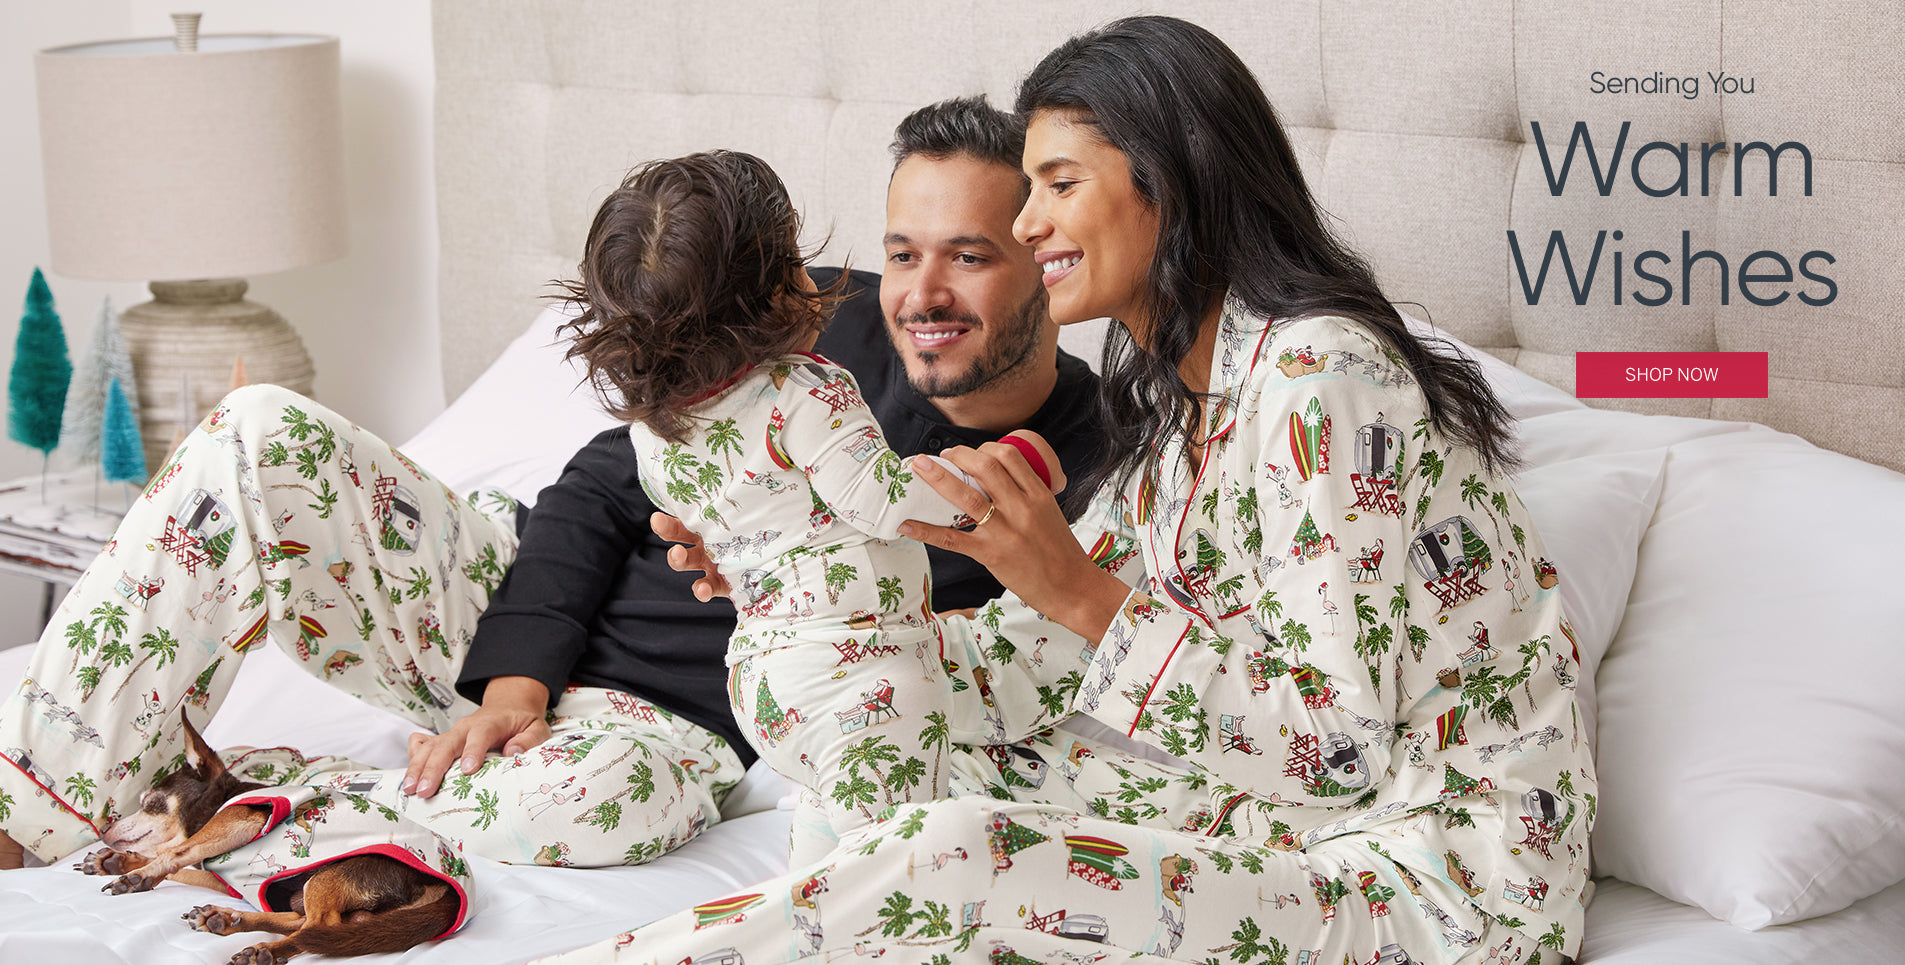 BedHead Pajamas Warm Wishes Family pjs Homepage.